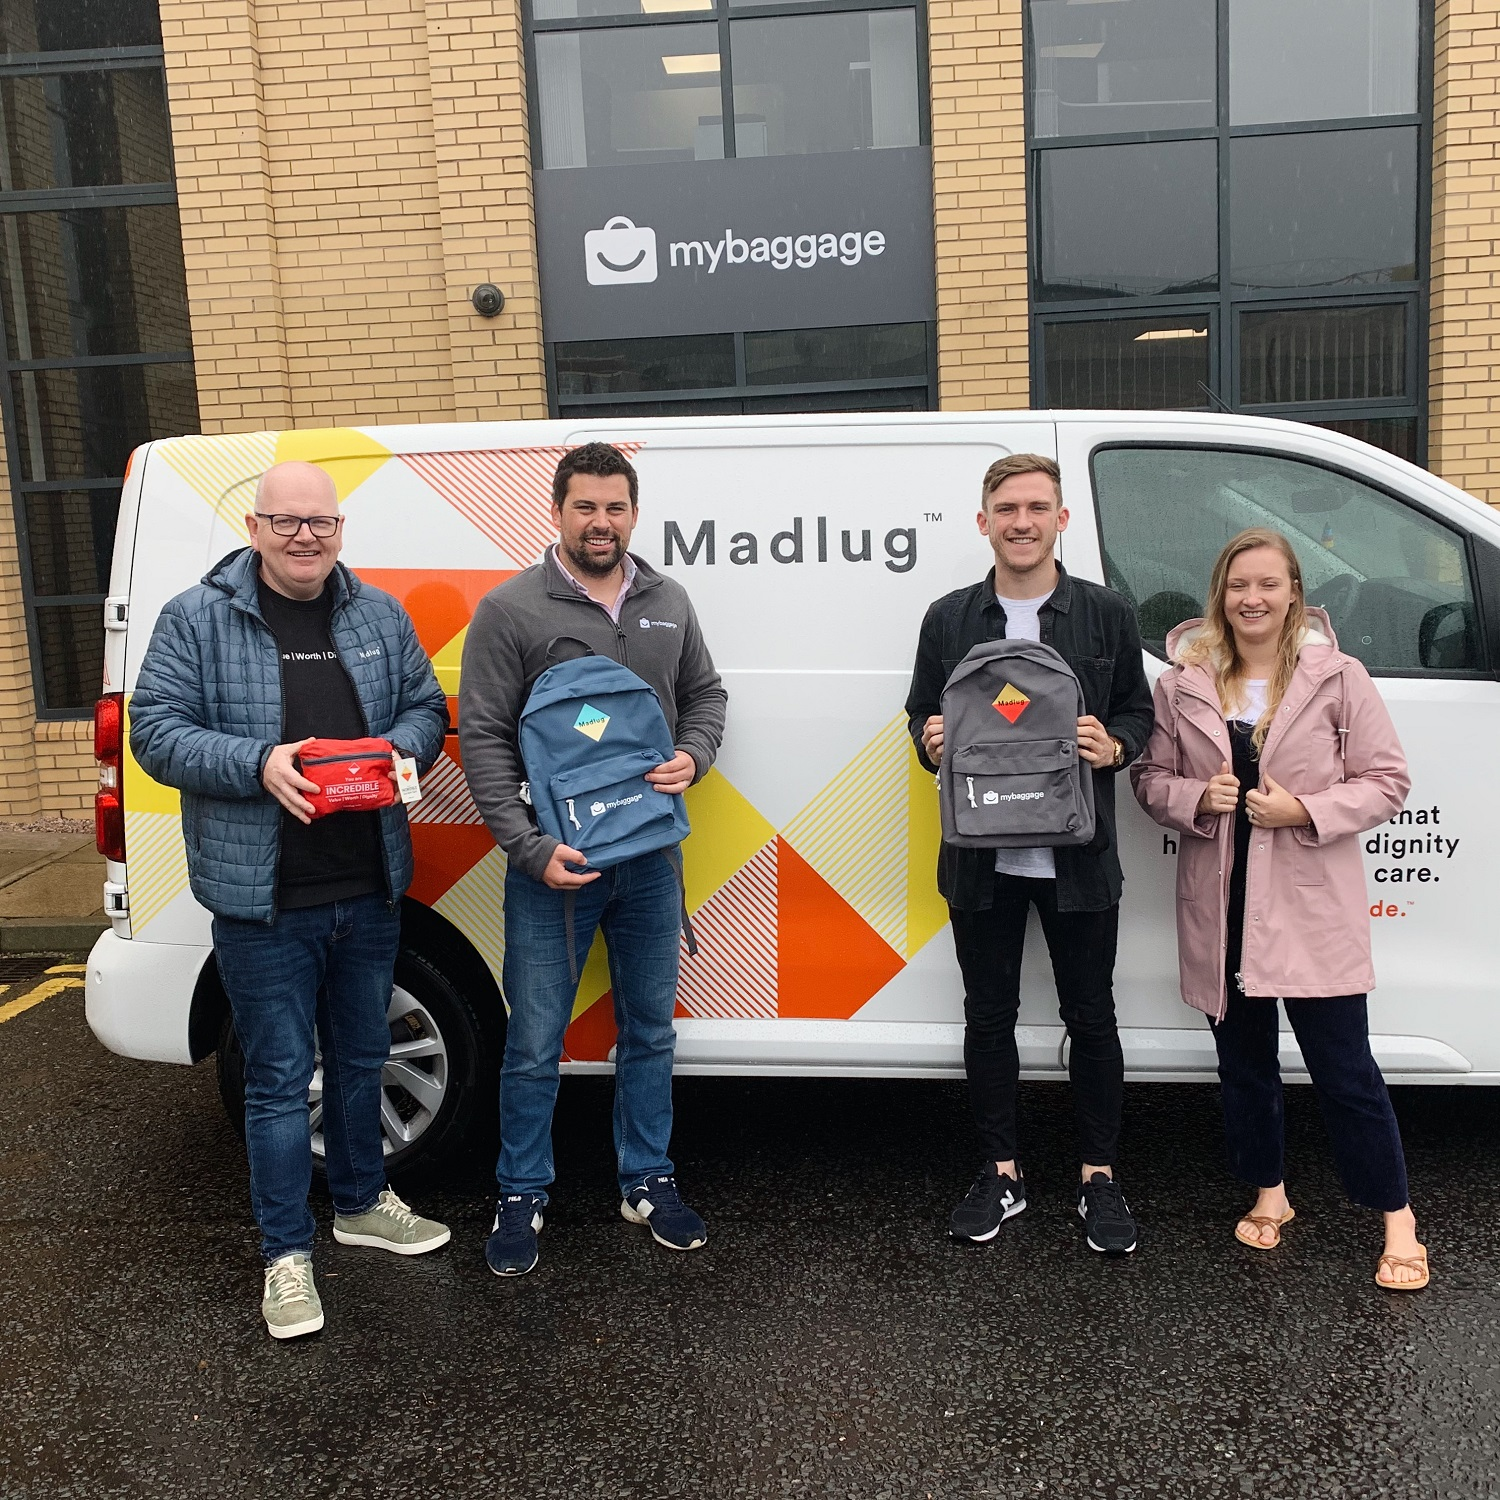 Madlug and My Baggage Announce Partnership in Bid to Make a Difference to Children in Care